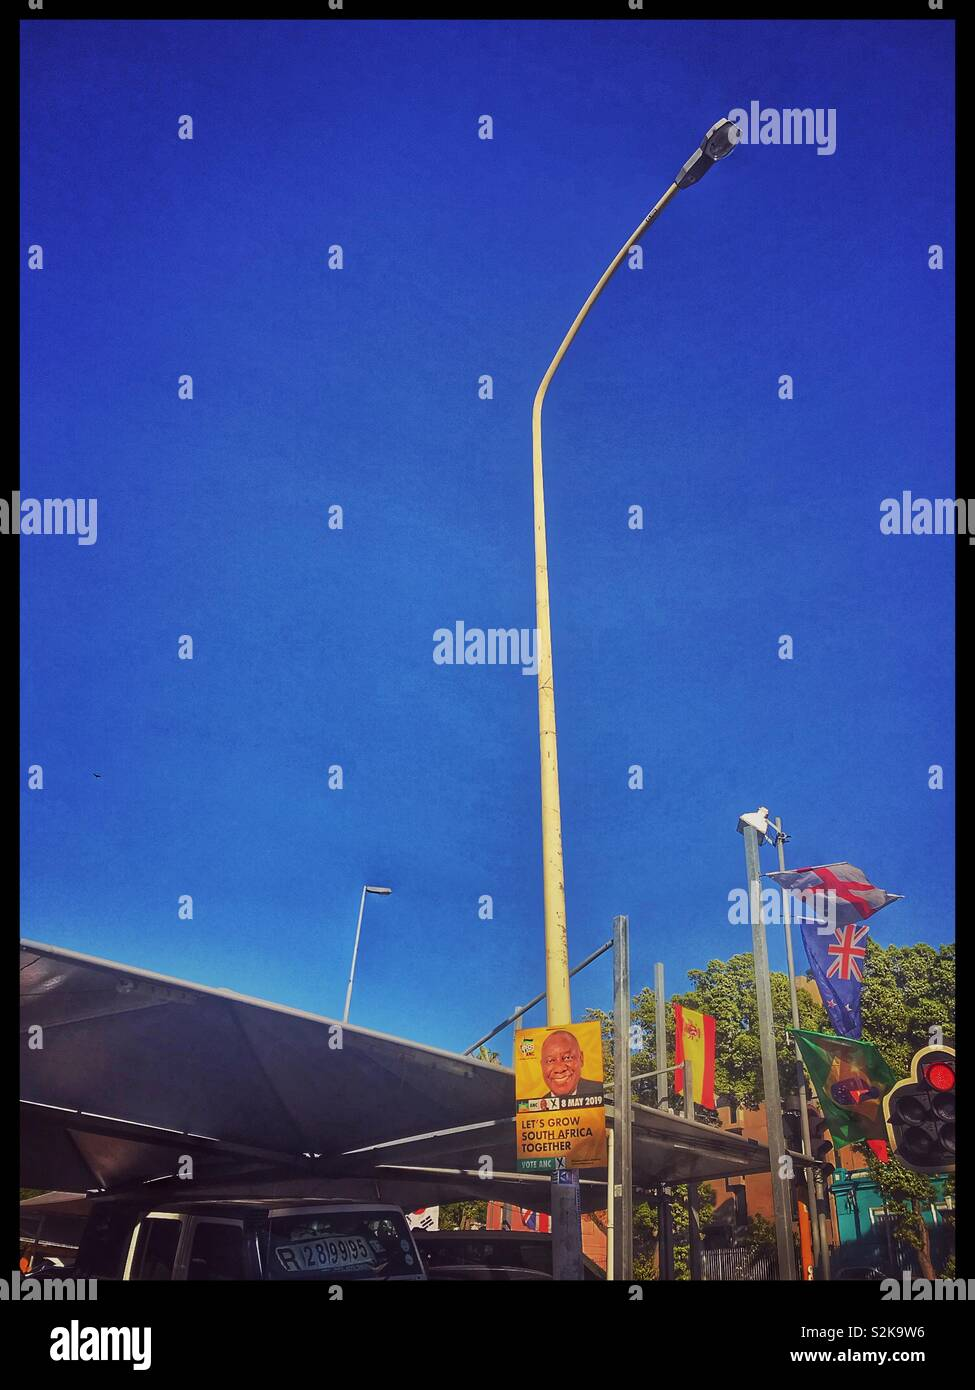 ANC election poster on lamppost, Cape Town, South Africa. - Stock Image